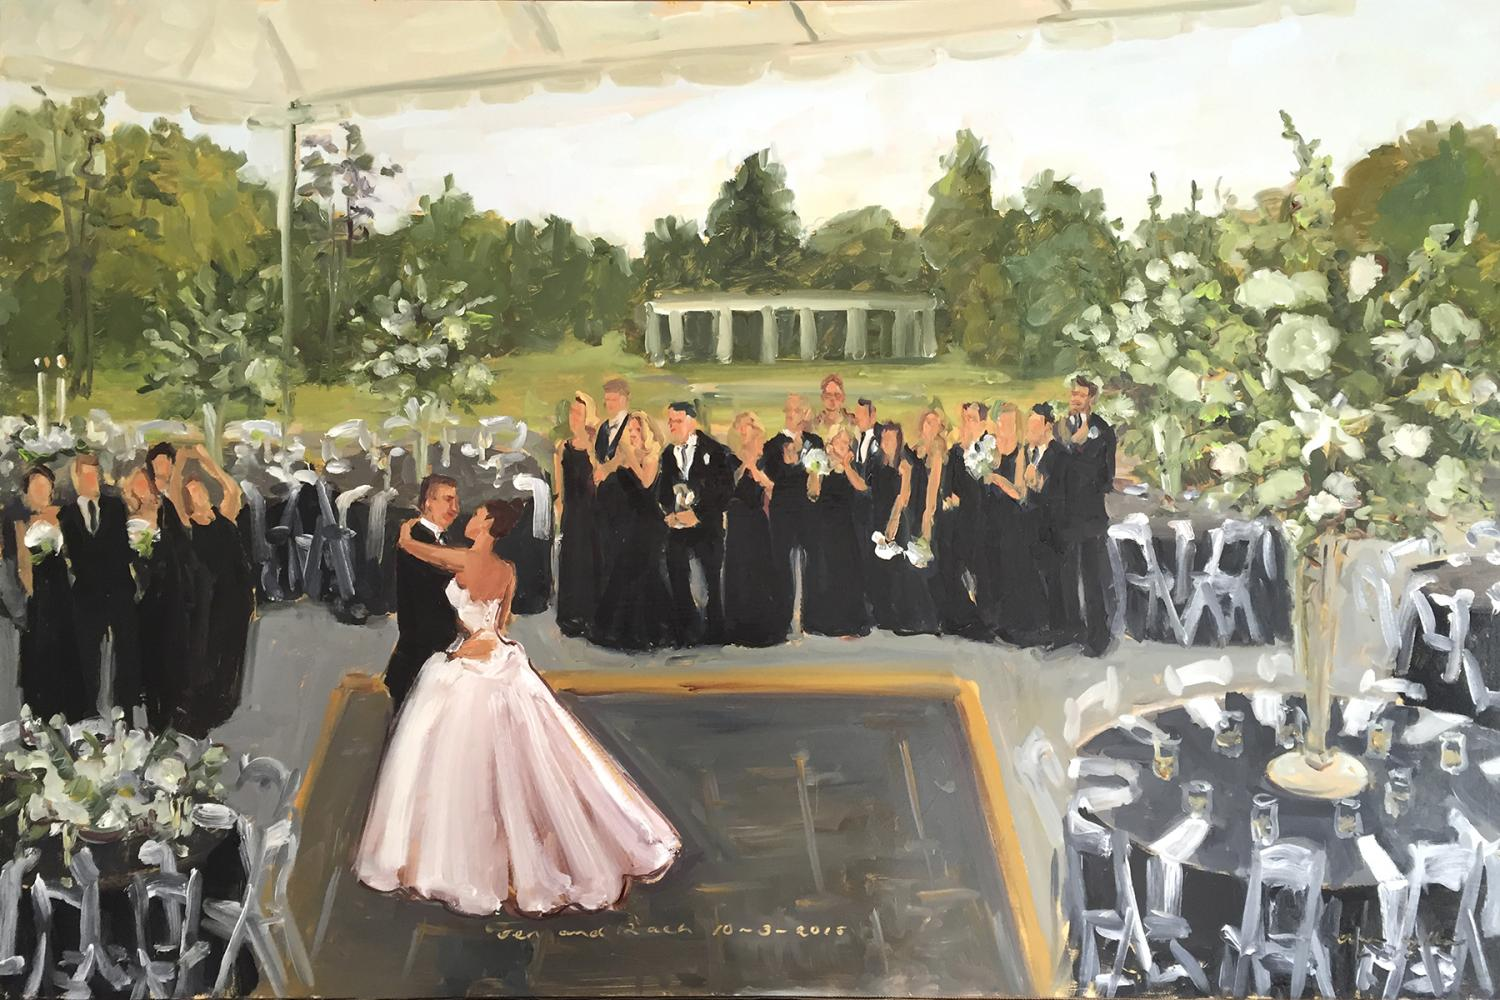 Greystone Hall wedding painted live by The Event Painter Joan Zylkin